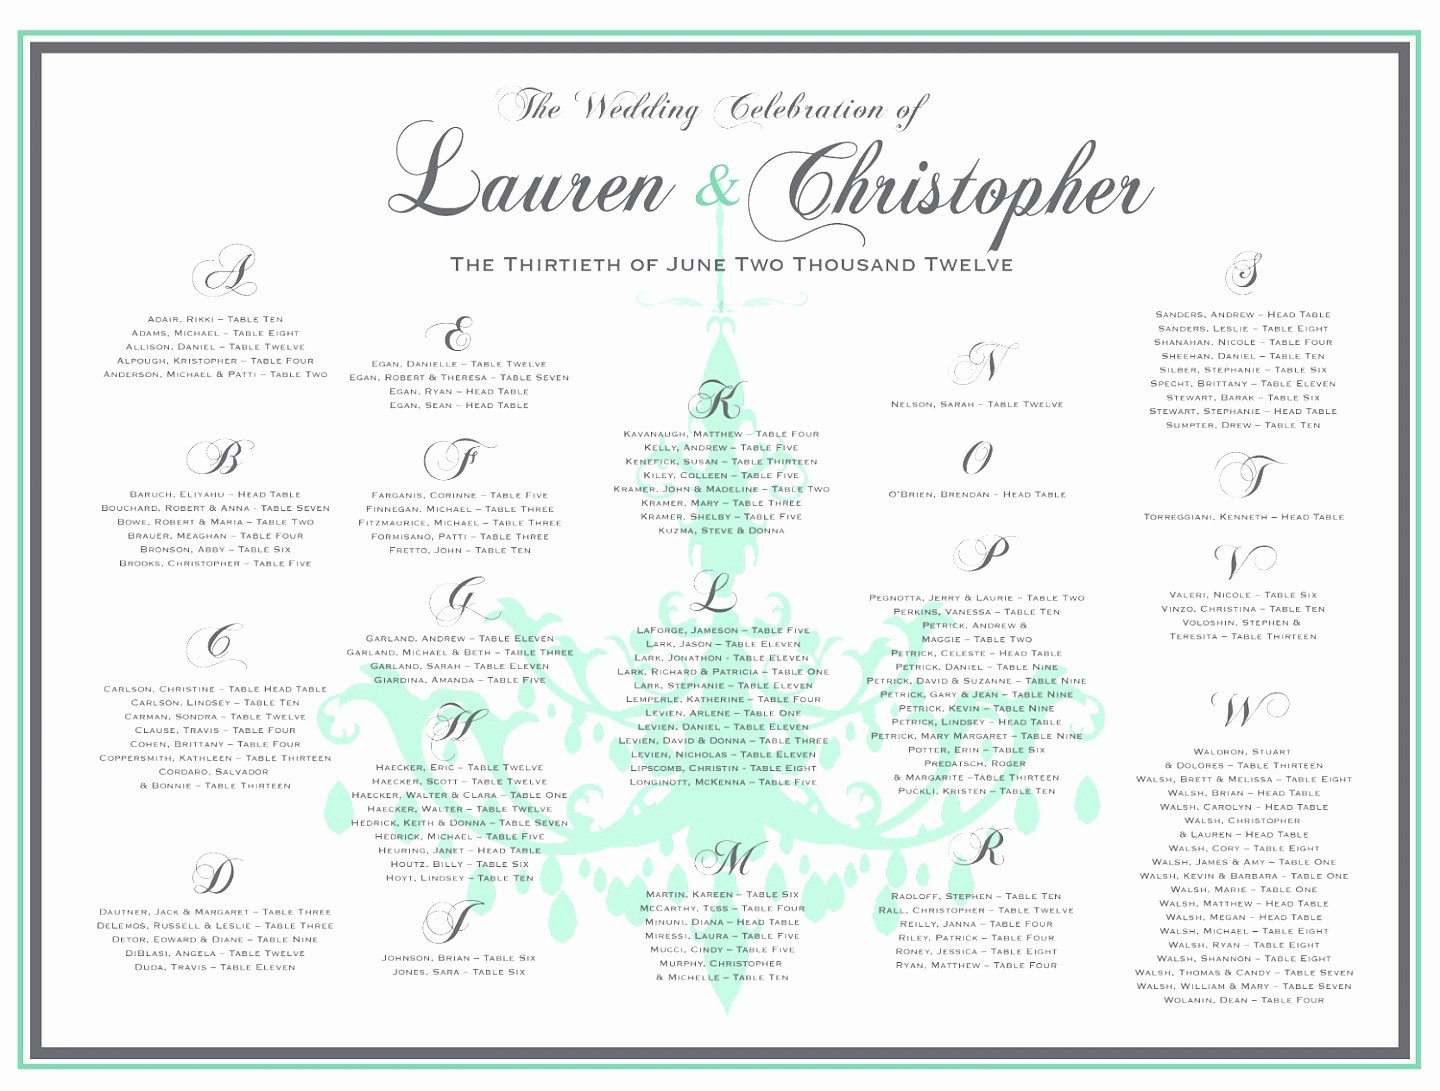 Seating Chart Wedding Template Free Best Of 7 Seating Chart Template for Wedding Reception Yyrto